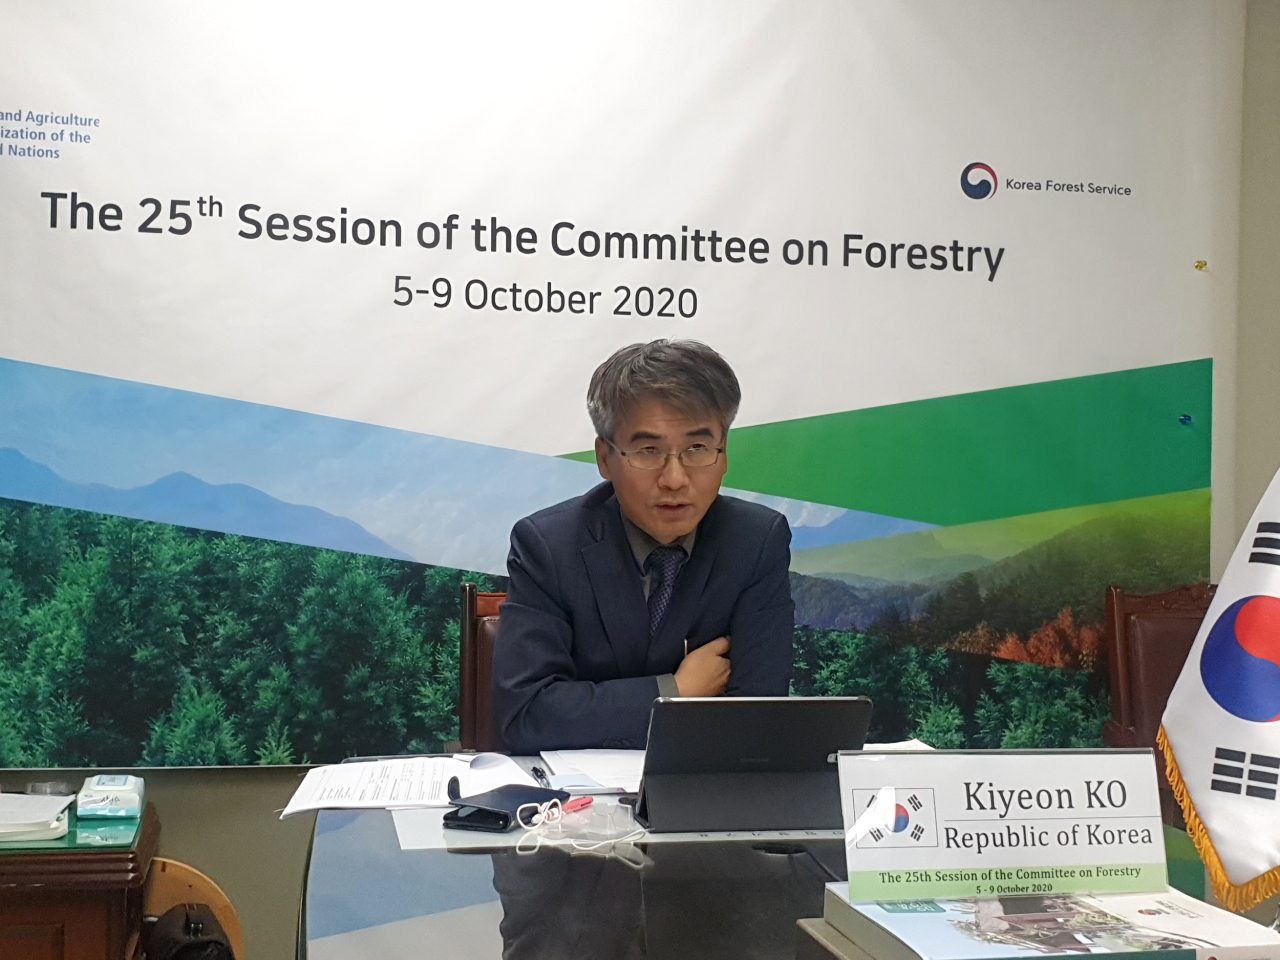 Ko Ki-yeon, the director general of International Affairs Bureau at the Korea Forest Service, participates in discussions at the UN FAO COFO's session held via video conference. (Korea Forest Service)